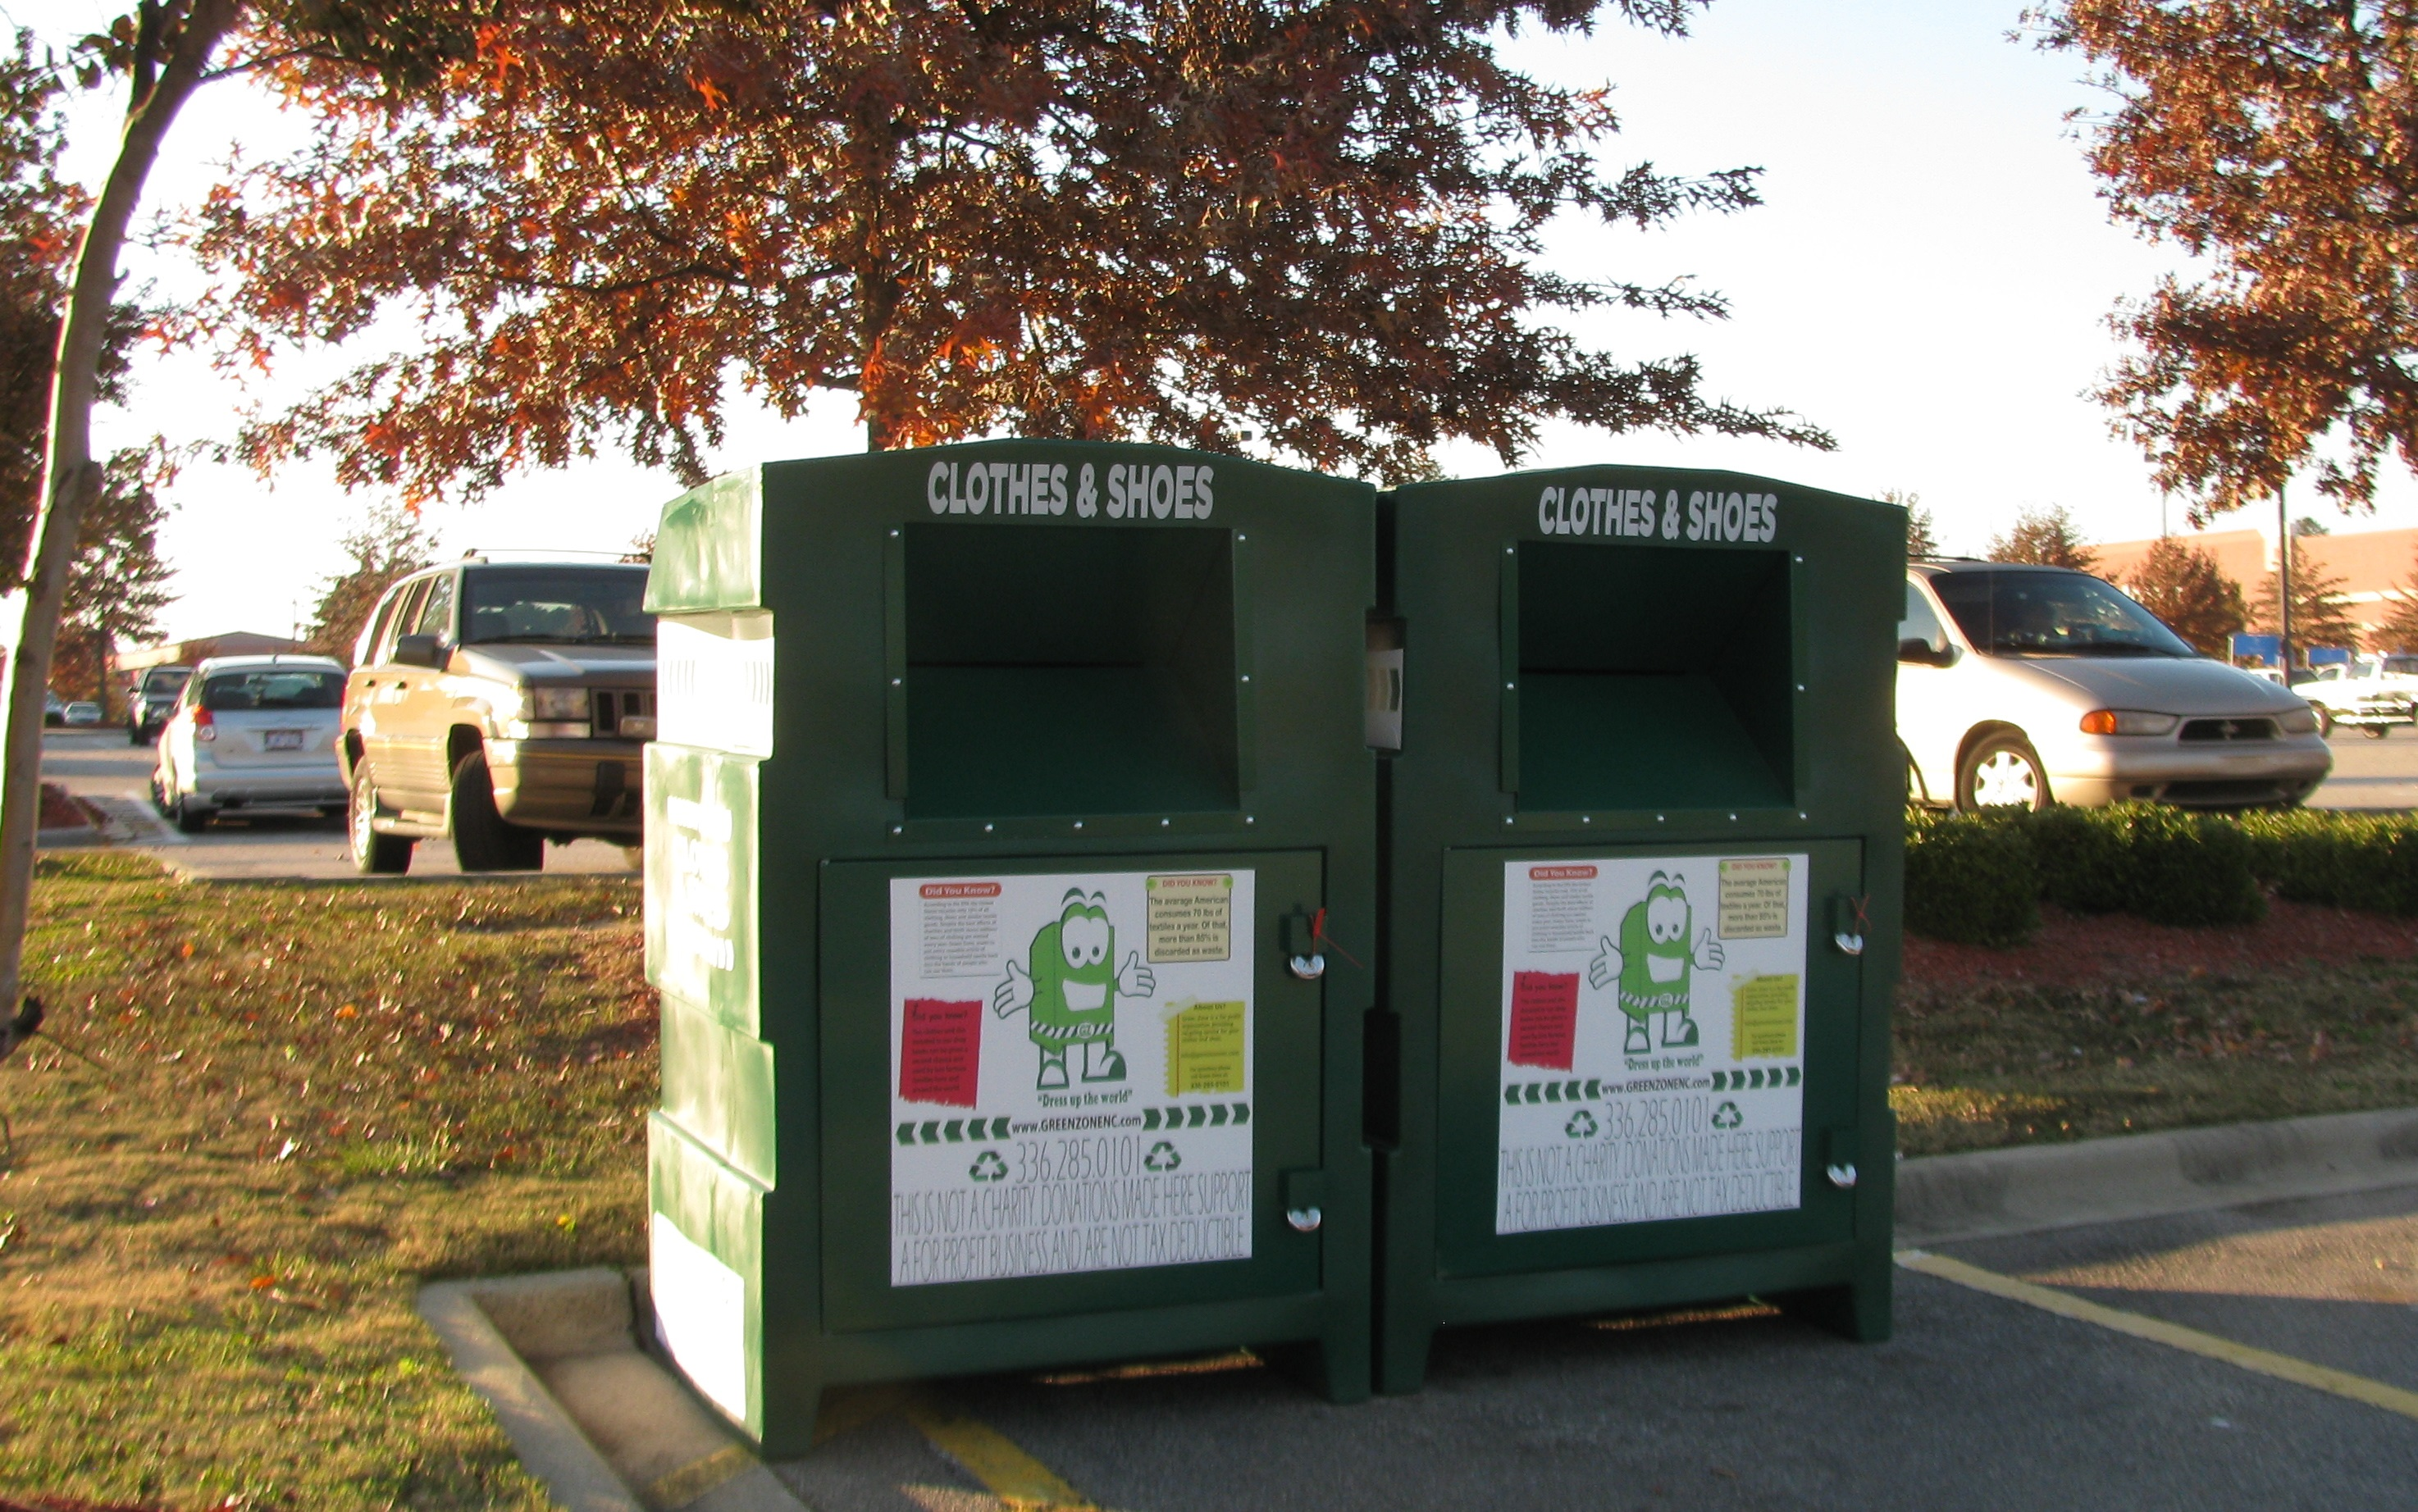 Clothing donation bins offer second life to nearly all textiles